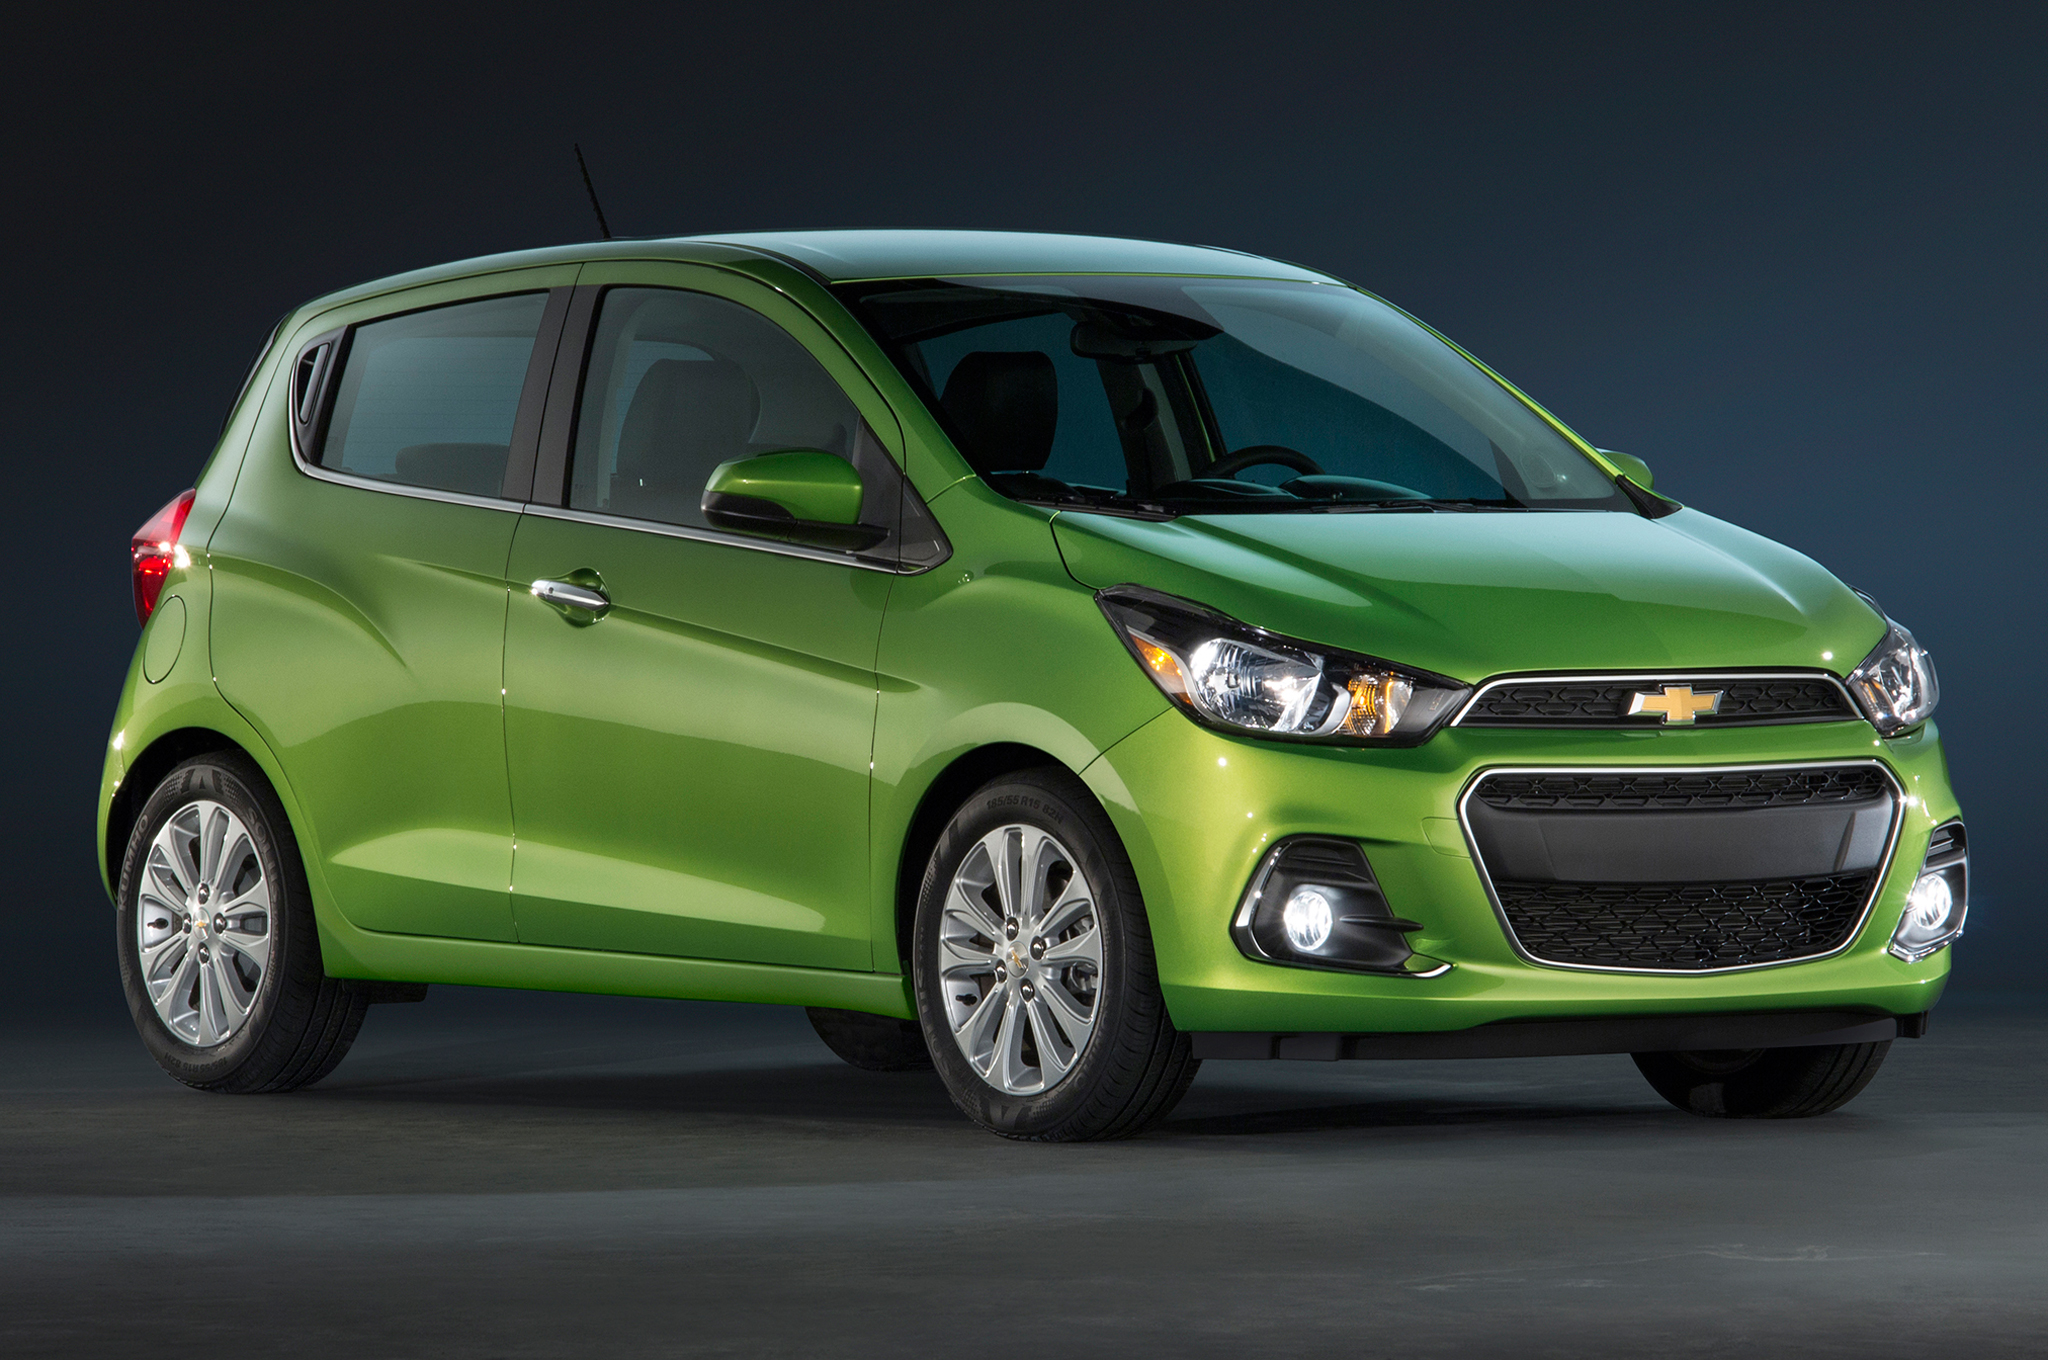 hight resolution of 2016 chevrolet spark first look motortrend2016 chevrolet spark first look